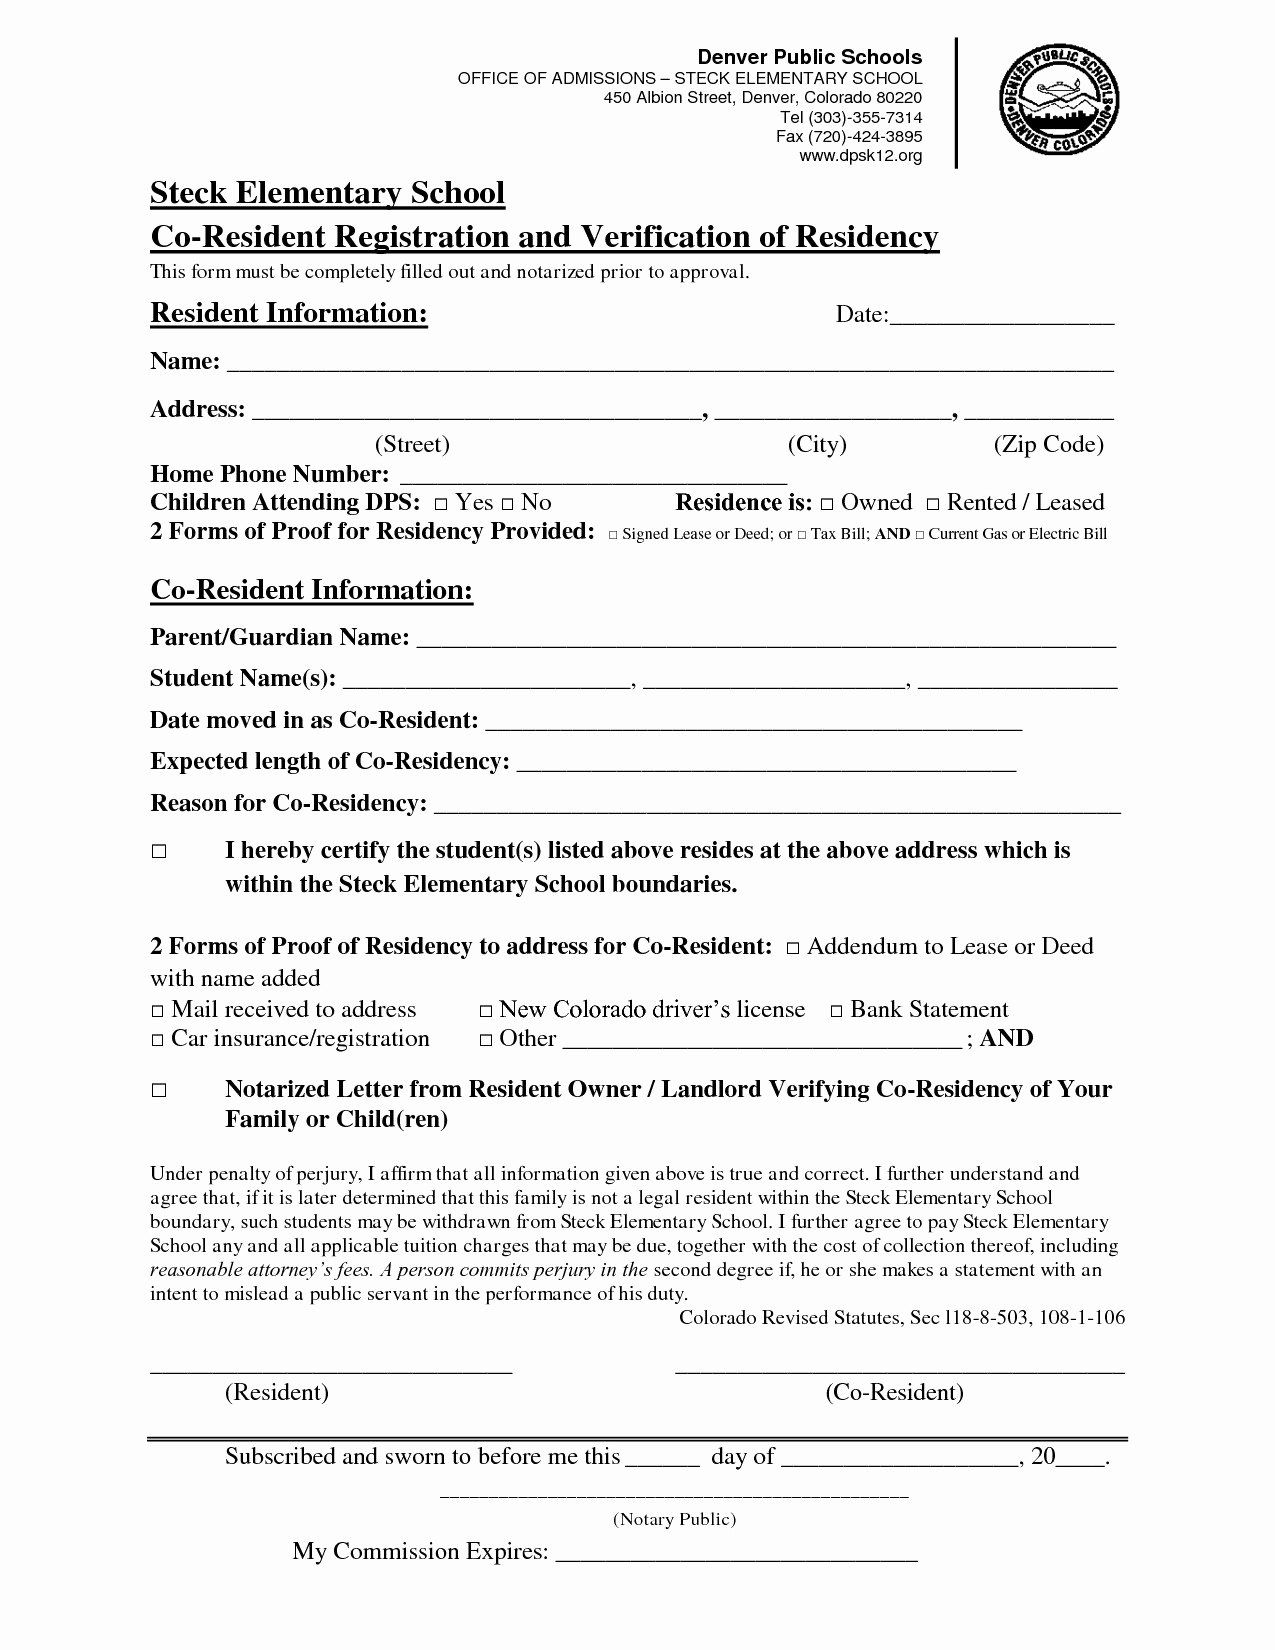 Proof Of Residency Letter Notarized Inspirational Notarized Letter Residency From Landlord Flowersheet Letter Templates Lettering Professional Letter Format